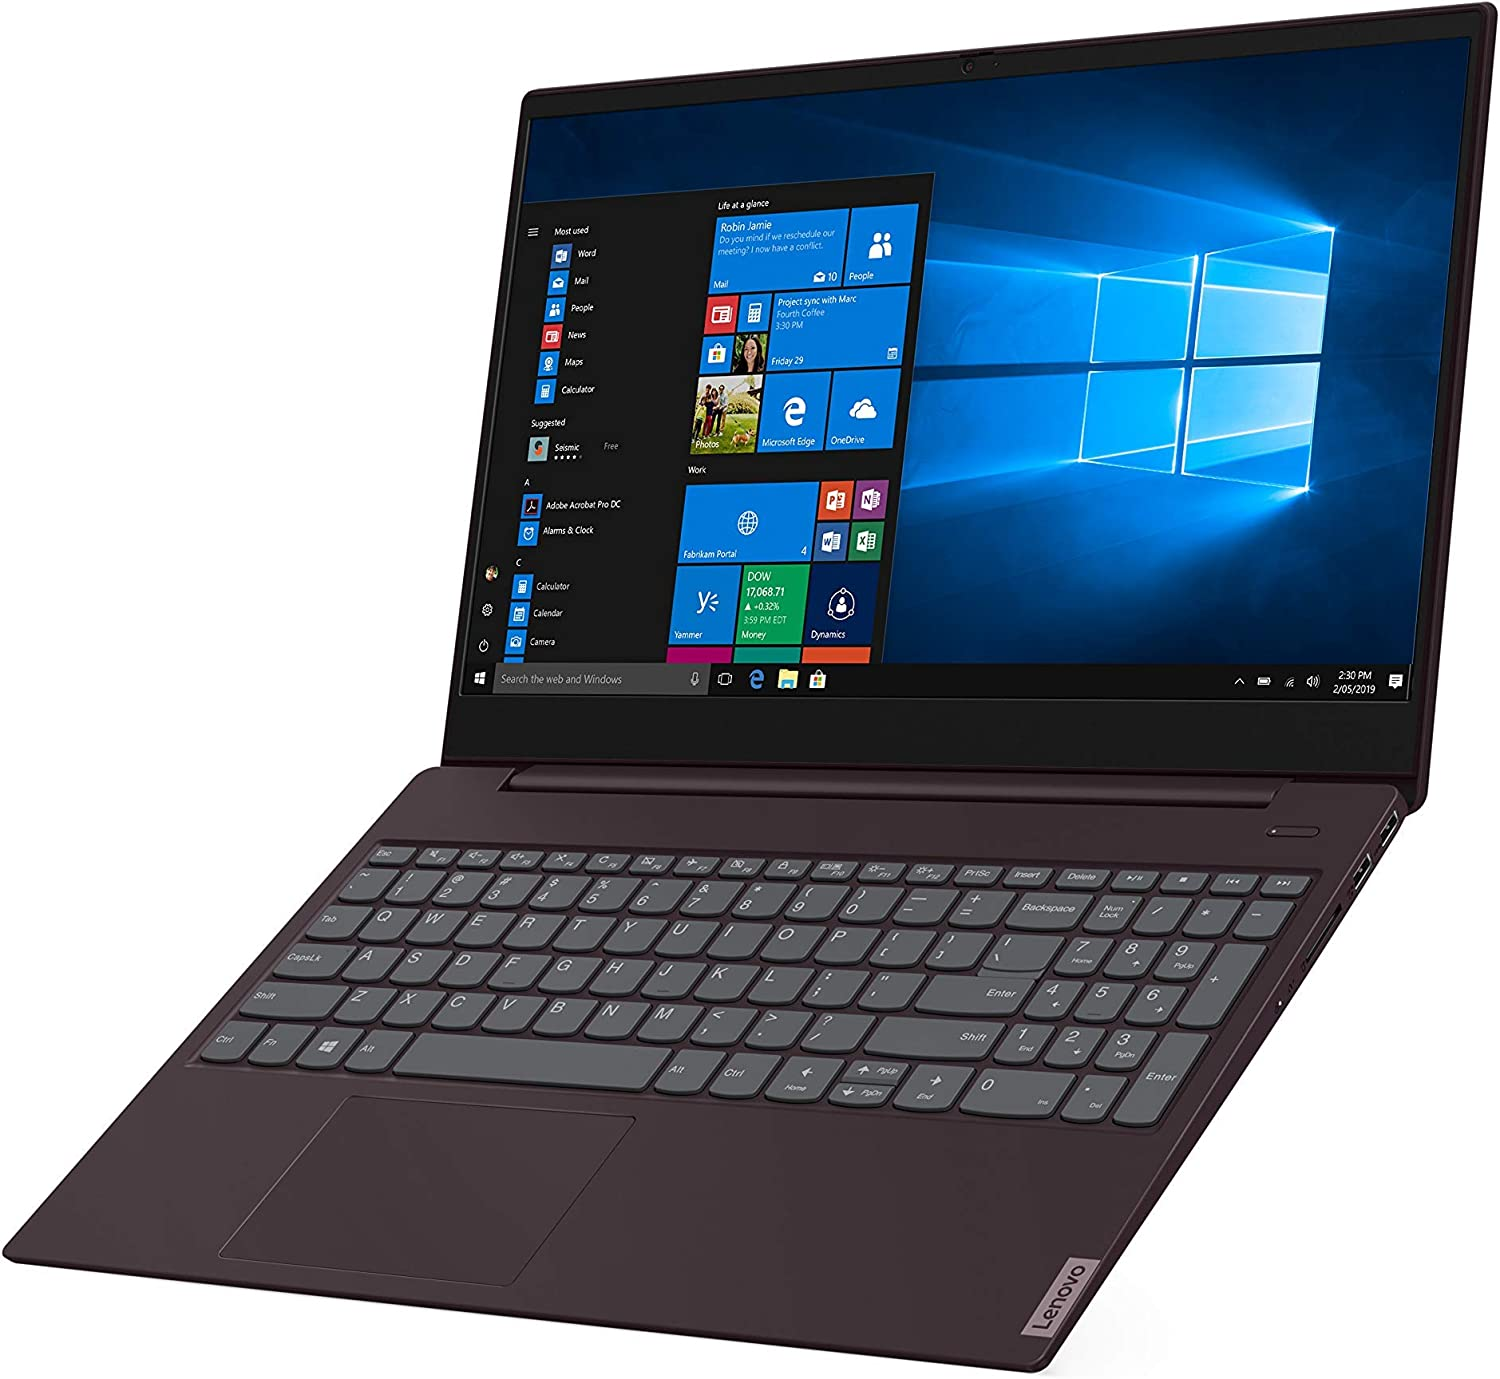 "2019 Lenovo ideapad S340 15.6"" HD Premium Home & Business Laptop, Intel Quad Core i5-8265U Upto 3.9GHz, 8GB RAM, 128GB SSD, USB-C, WiFi, HDMI, Webcam, Windows 10, Dark Orchid (Renewed)"